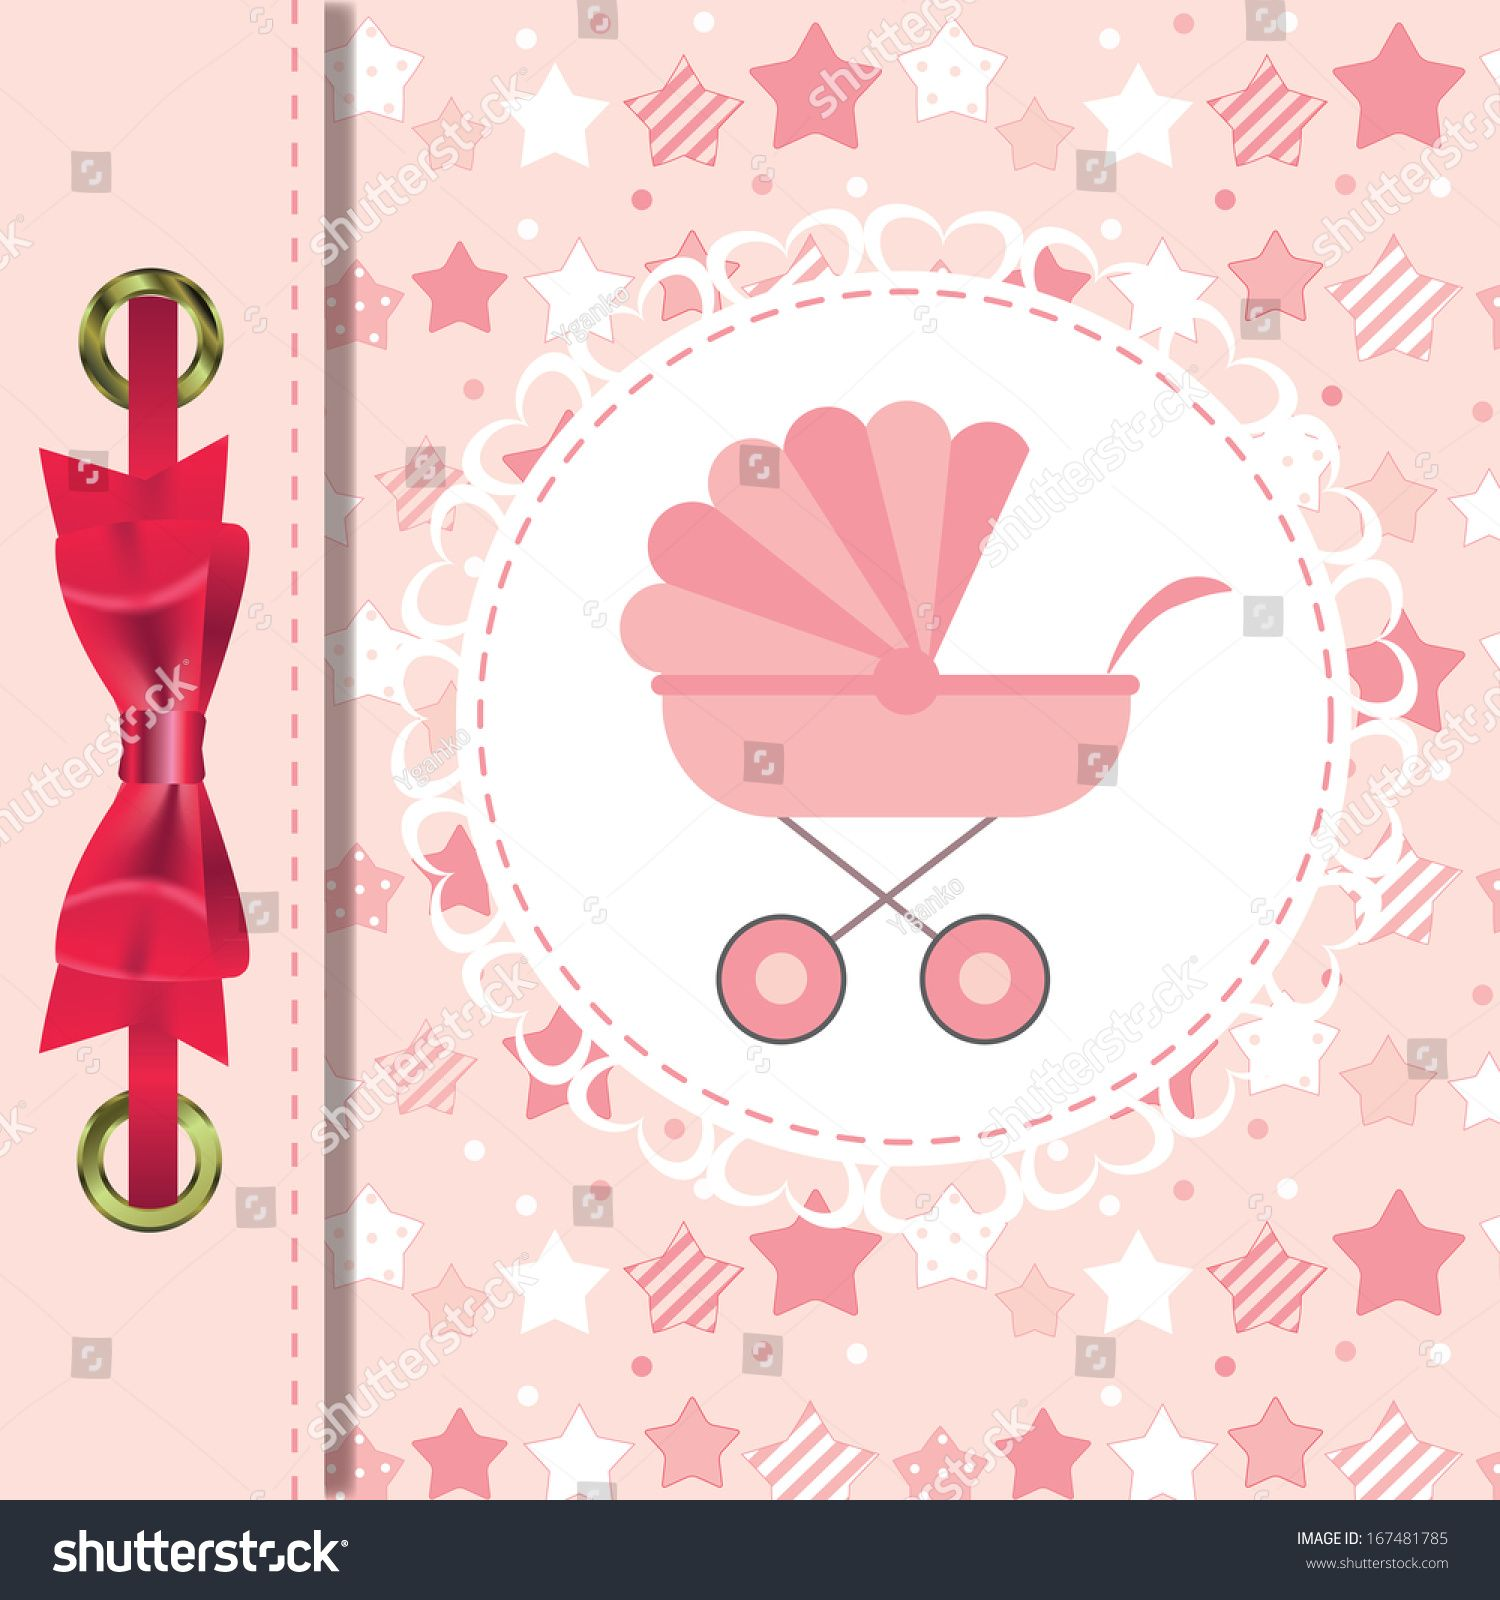 Photo of Vector Illustration Pink Baby Carriage Newborn Stock Vector